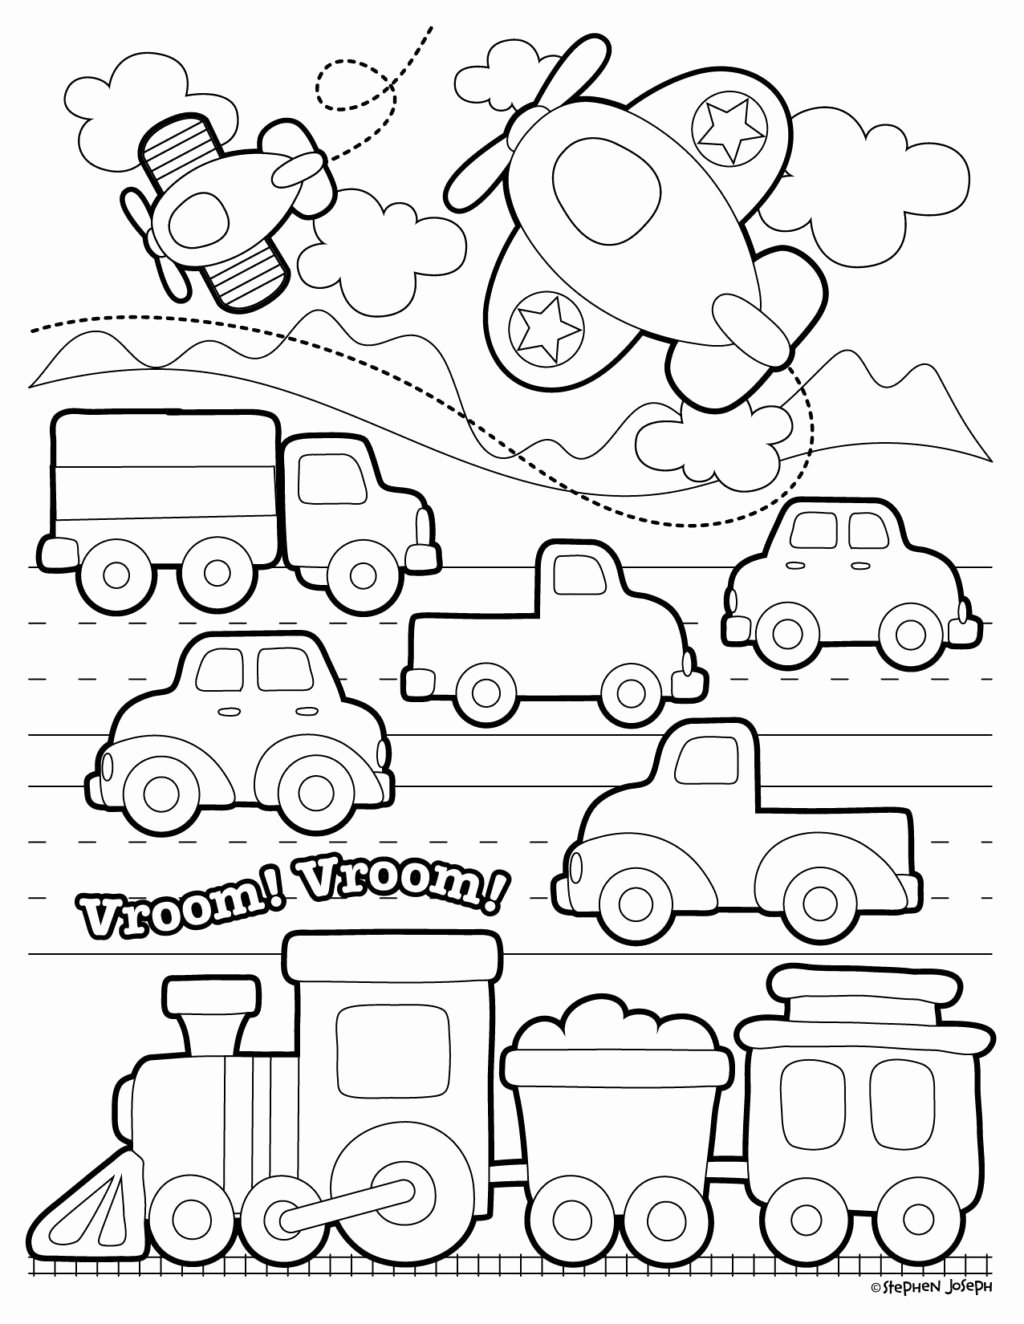 Transport Worksheets for Preschoolers top Worksheet Worksheet Coloring Pages Transportation